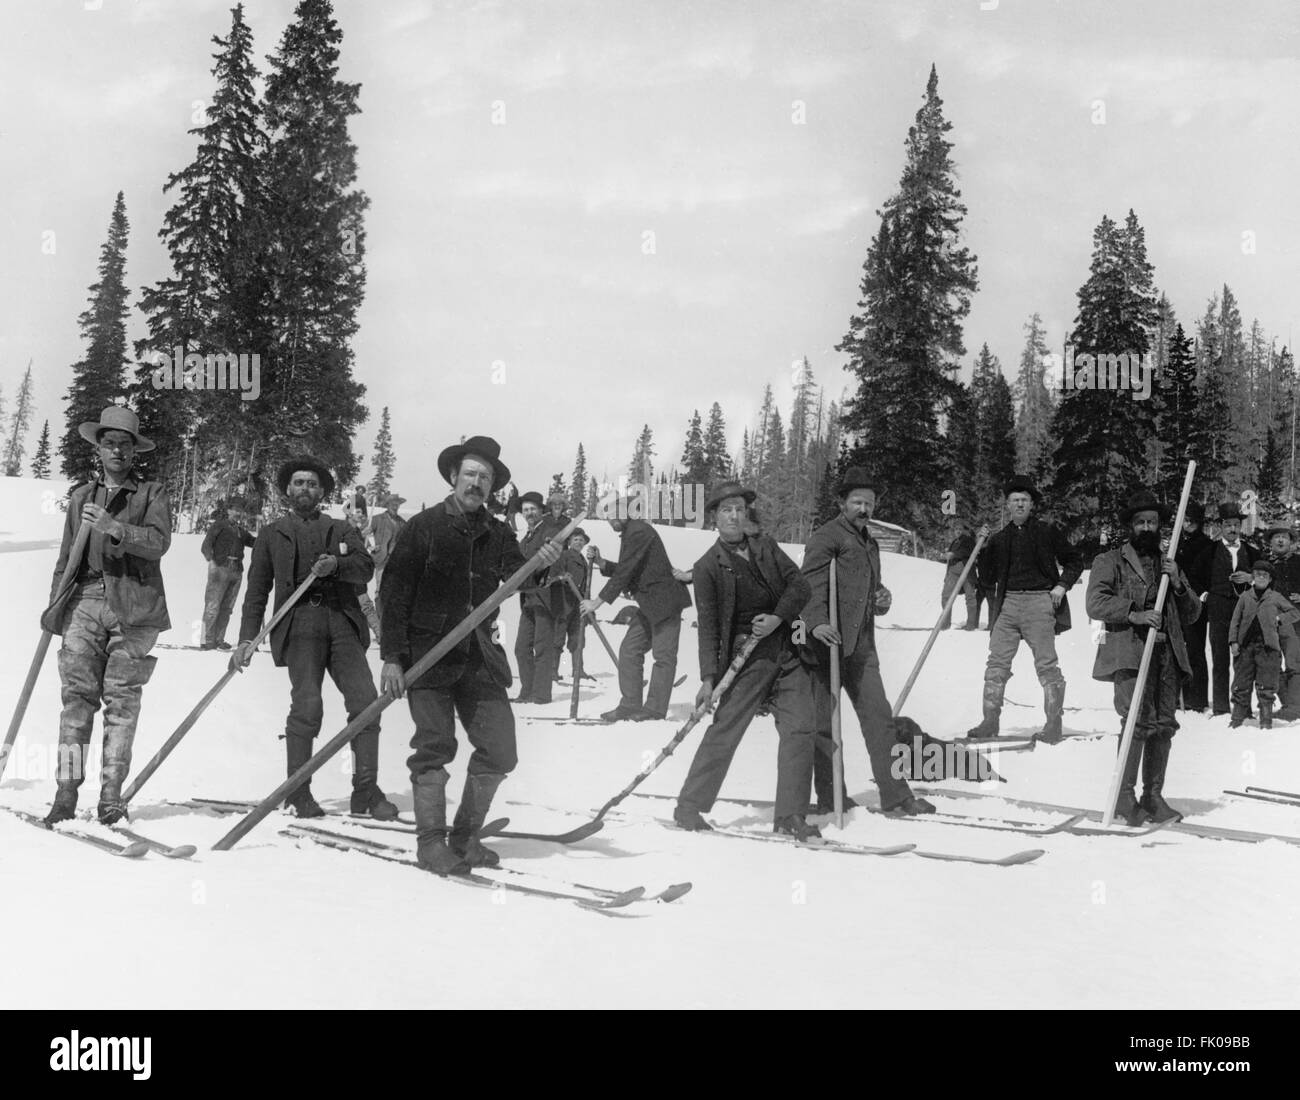 Group of Skiers, USA, circa 1915 - Stock Image